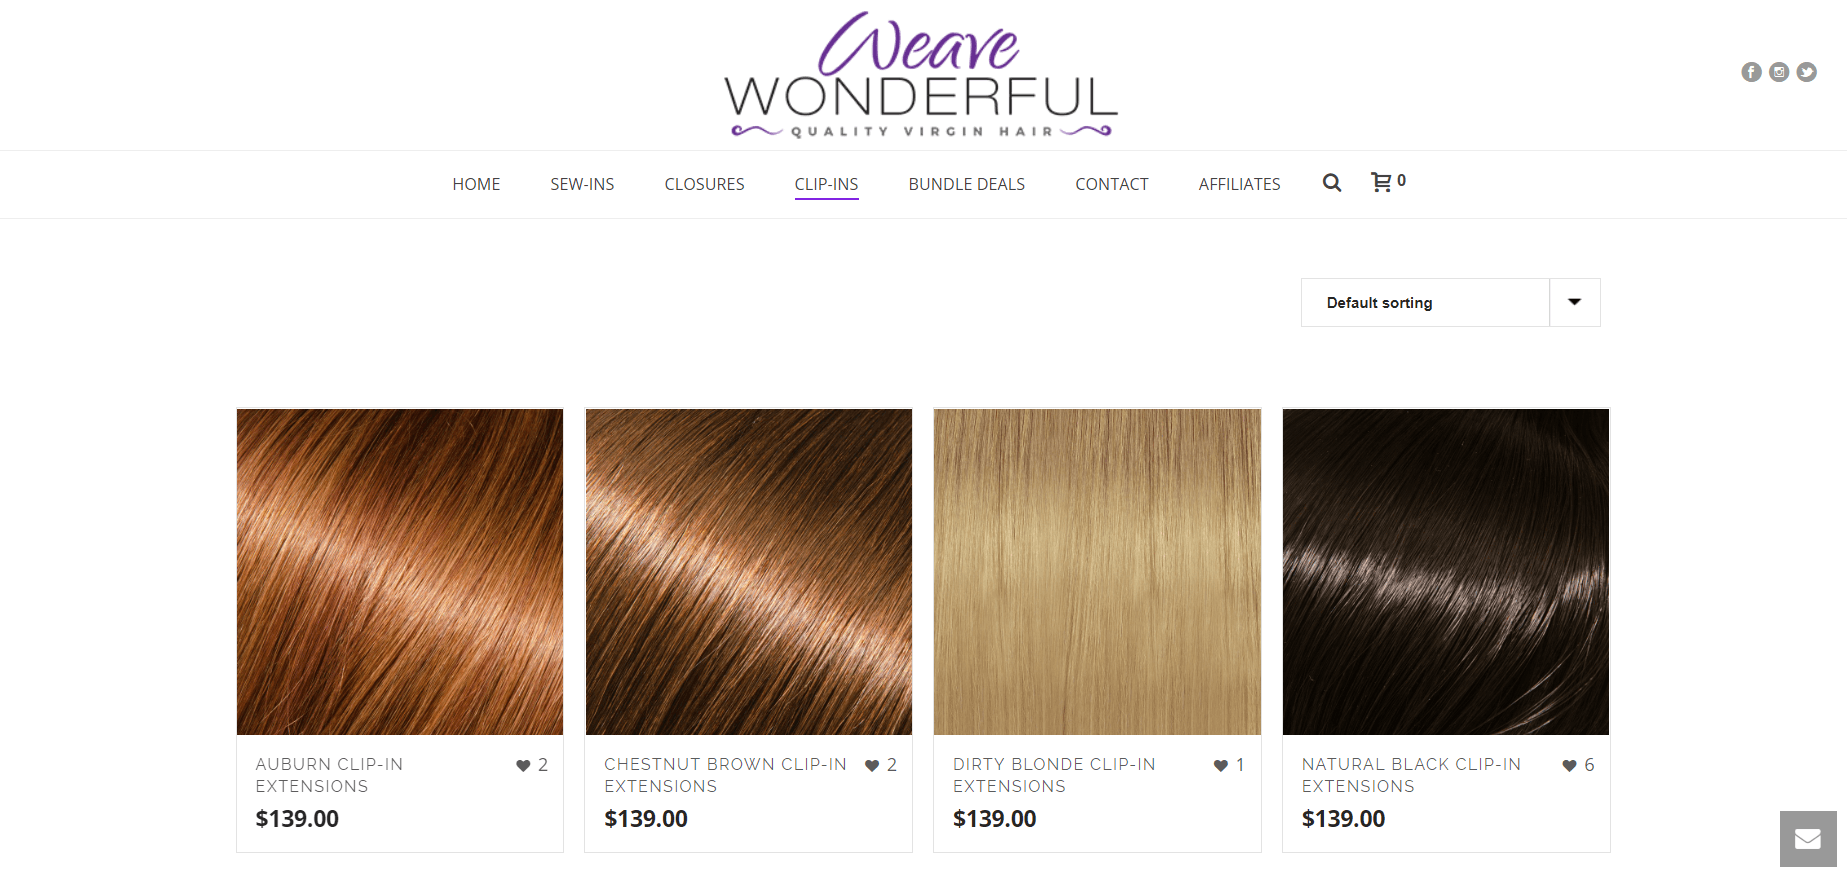 This screenshot of the Weave Wonderful website shows side-by-side photos of hair extensions in different colors, including auburn, brunette, blonde and black.